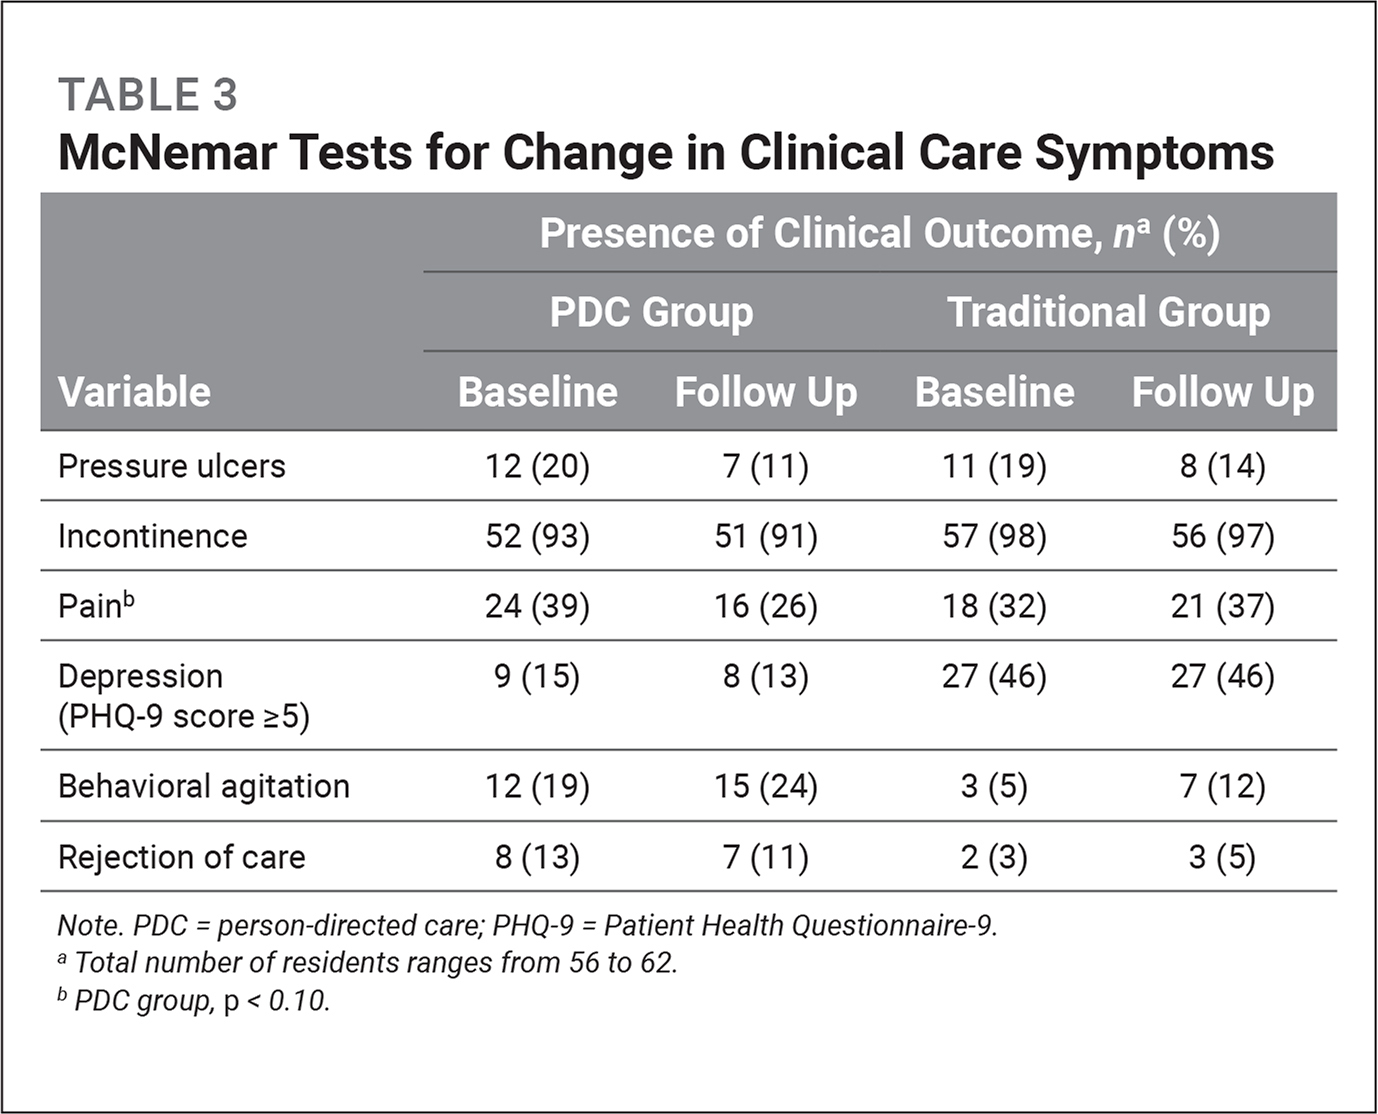 McNemar Tests for Change in Clinical Care Symptoms